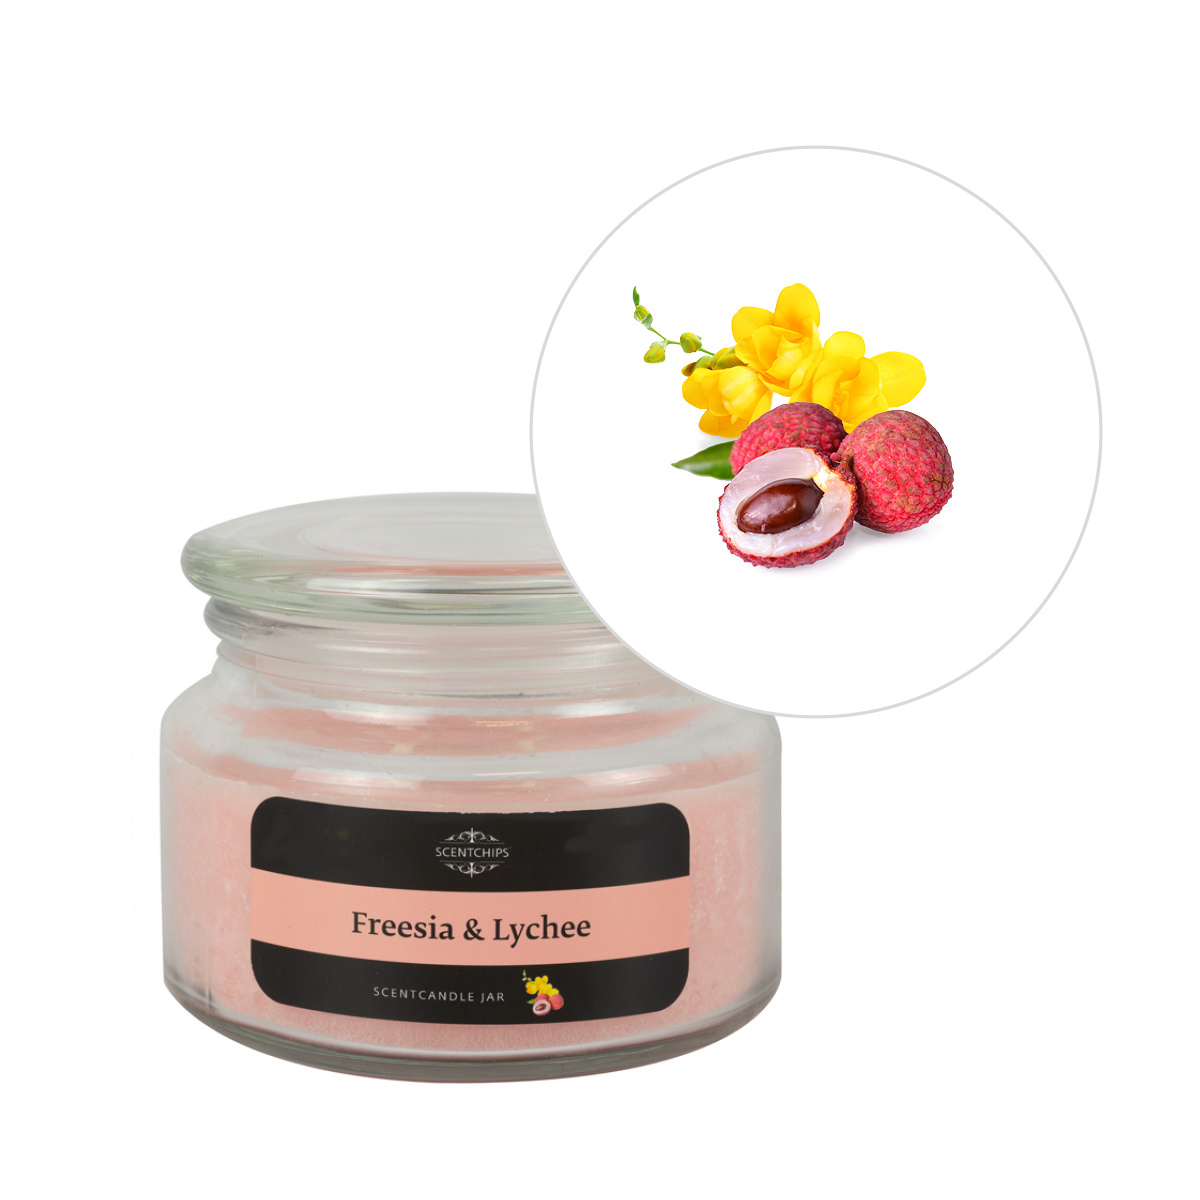 Scentchips® Freesia & Lychee Fragrance candle jar ScentCandles